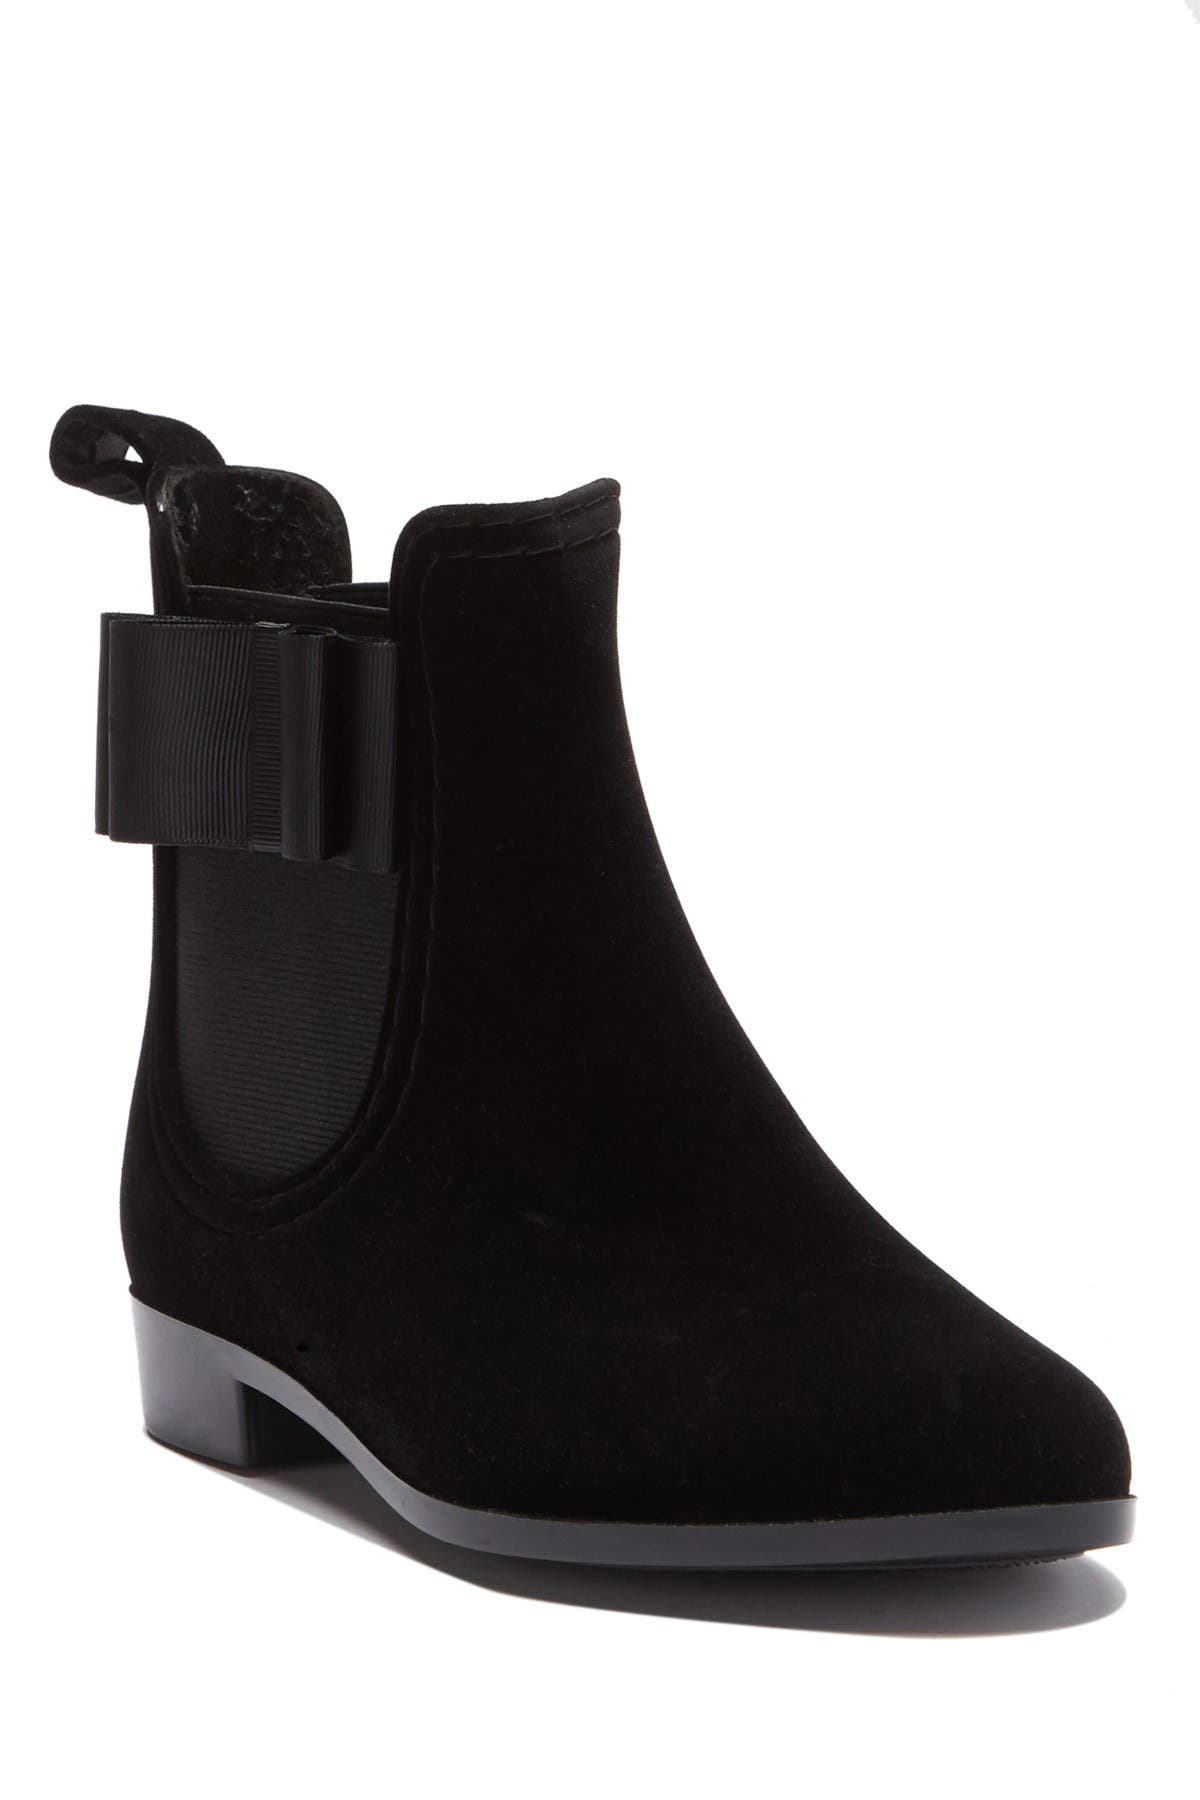 Image of Joie Reagan Velvet Chelsea Boot